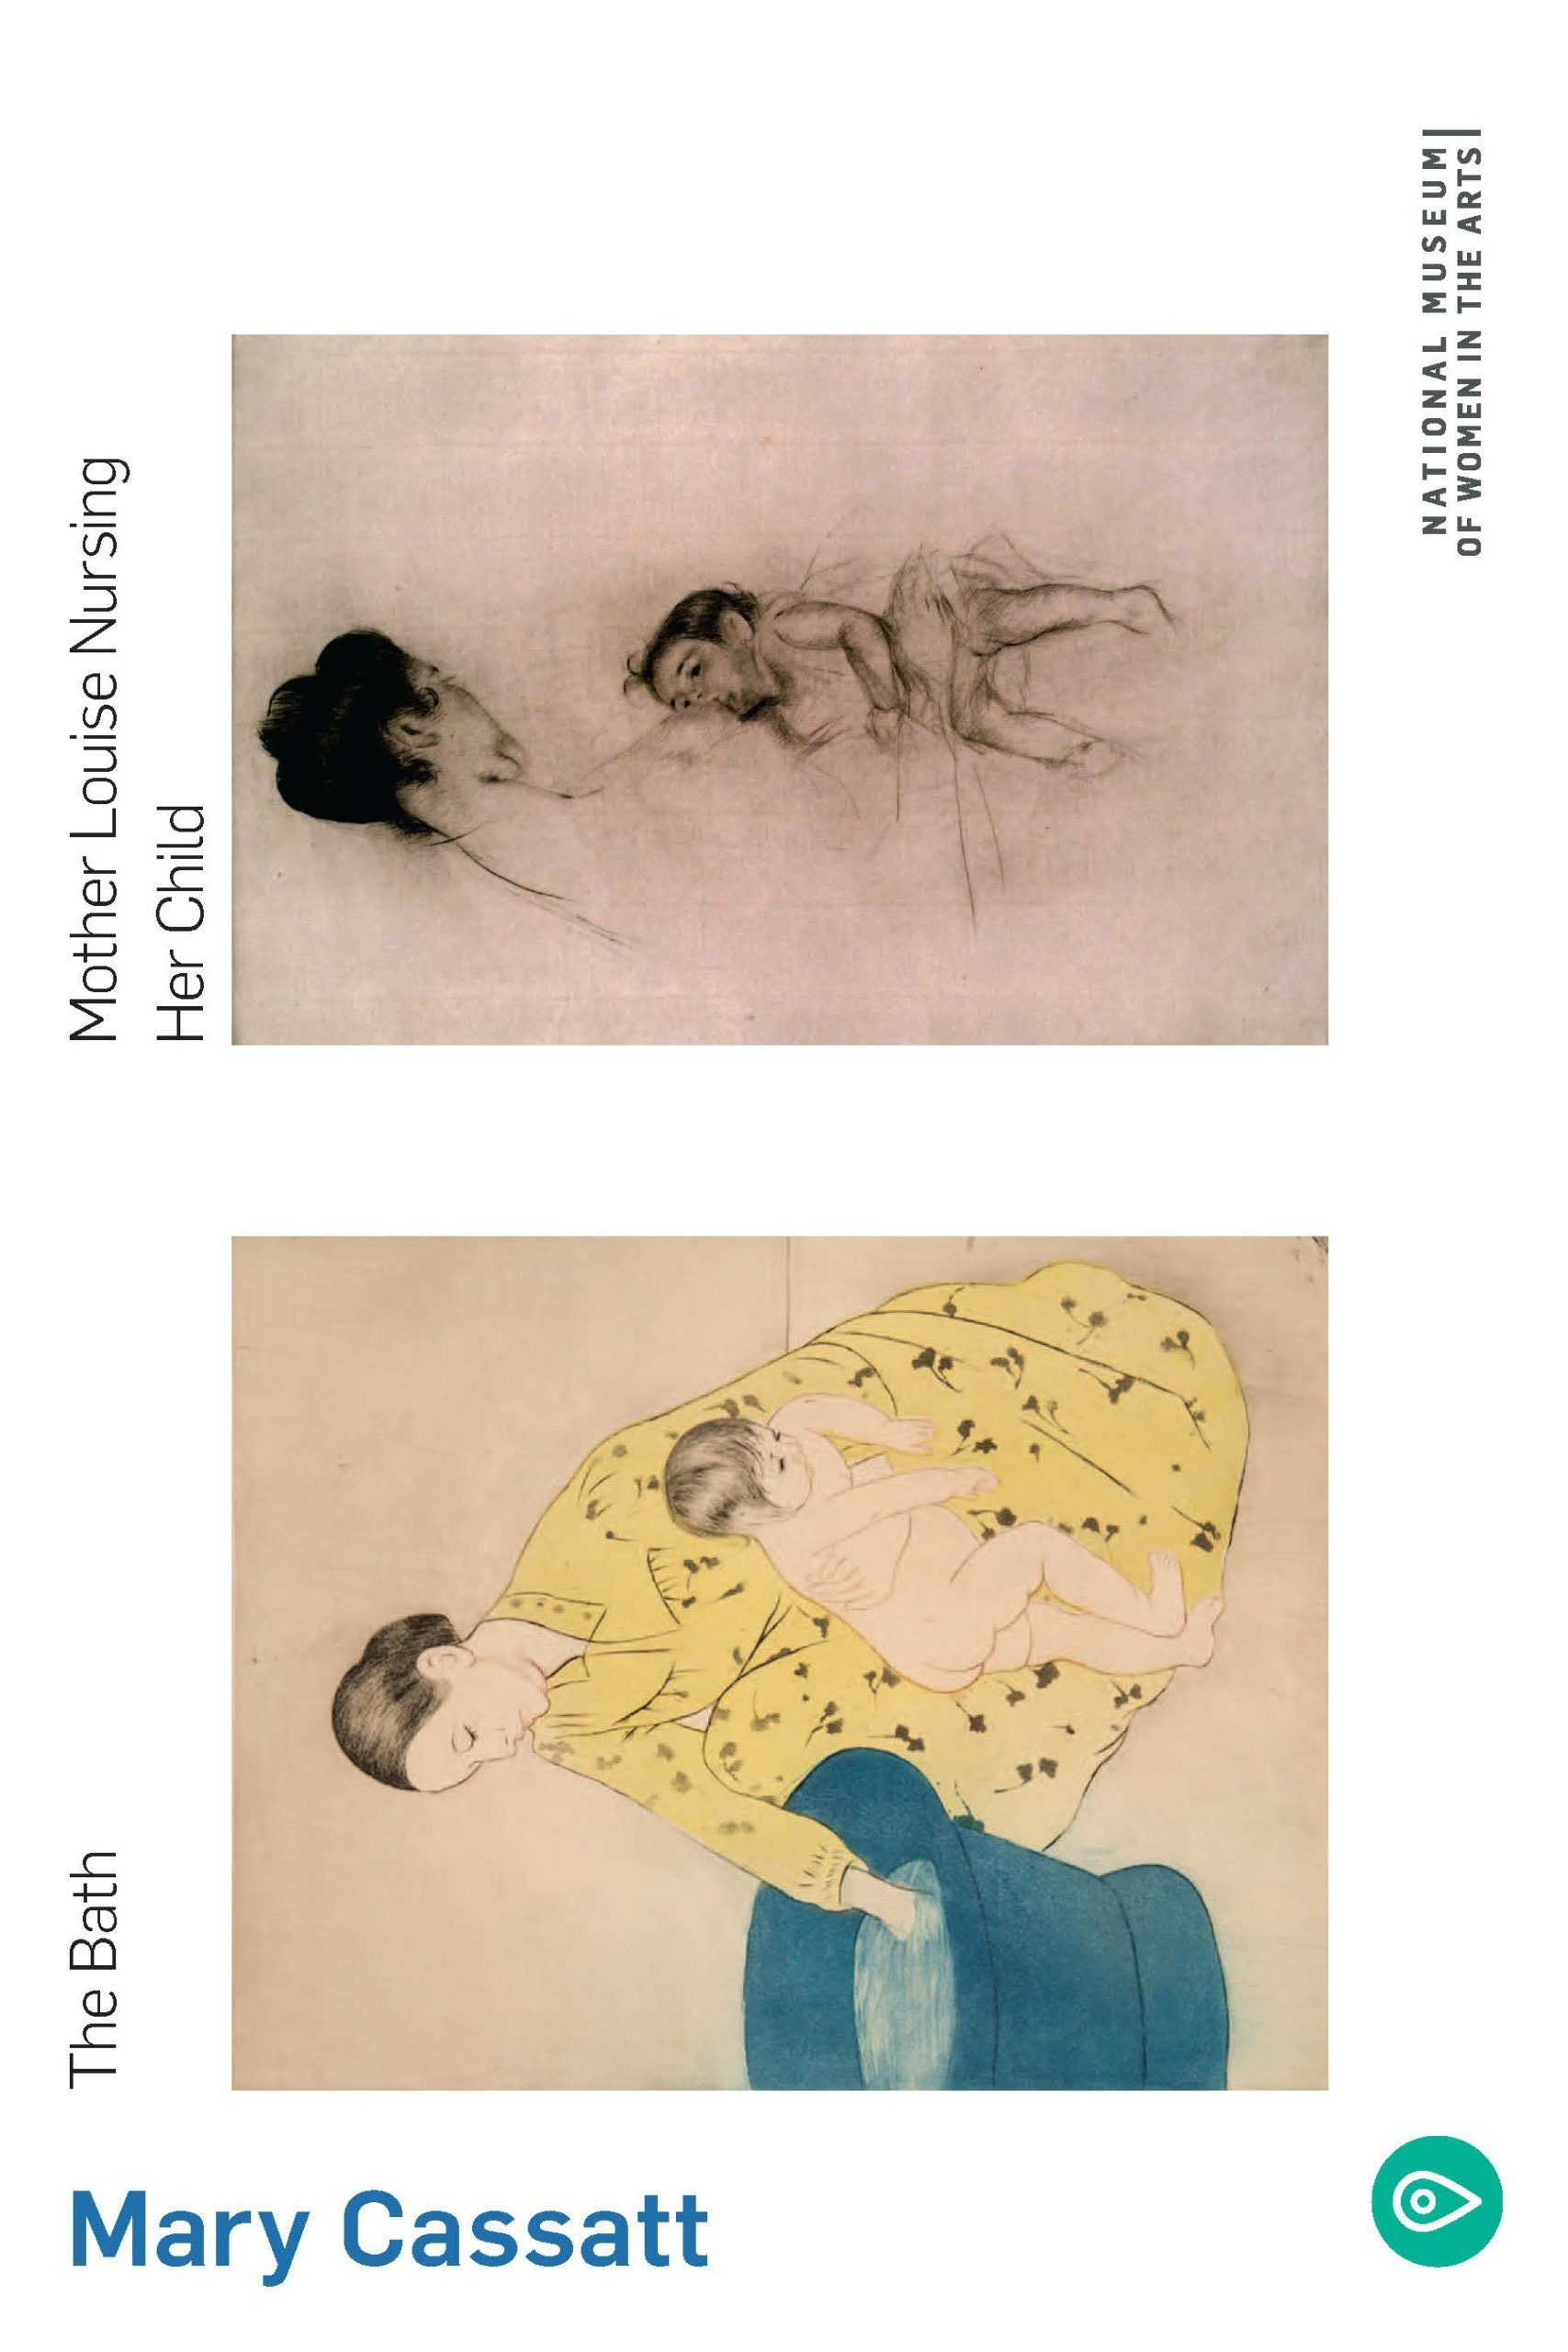 Facts about the artist Mary Cassatt and her work (PDF)